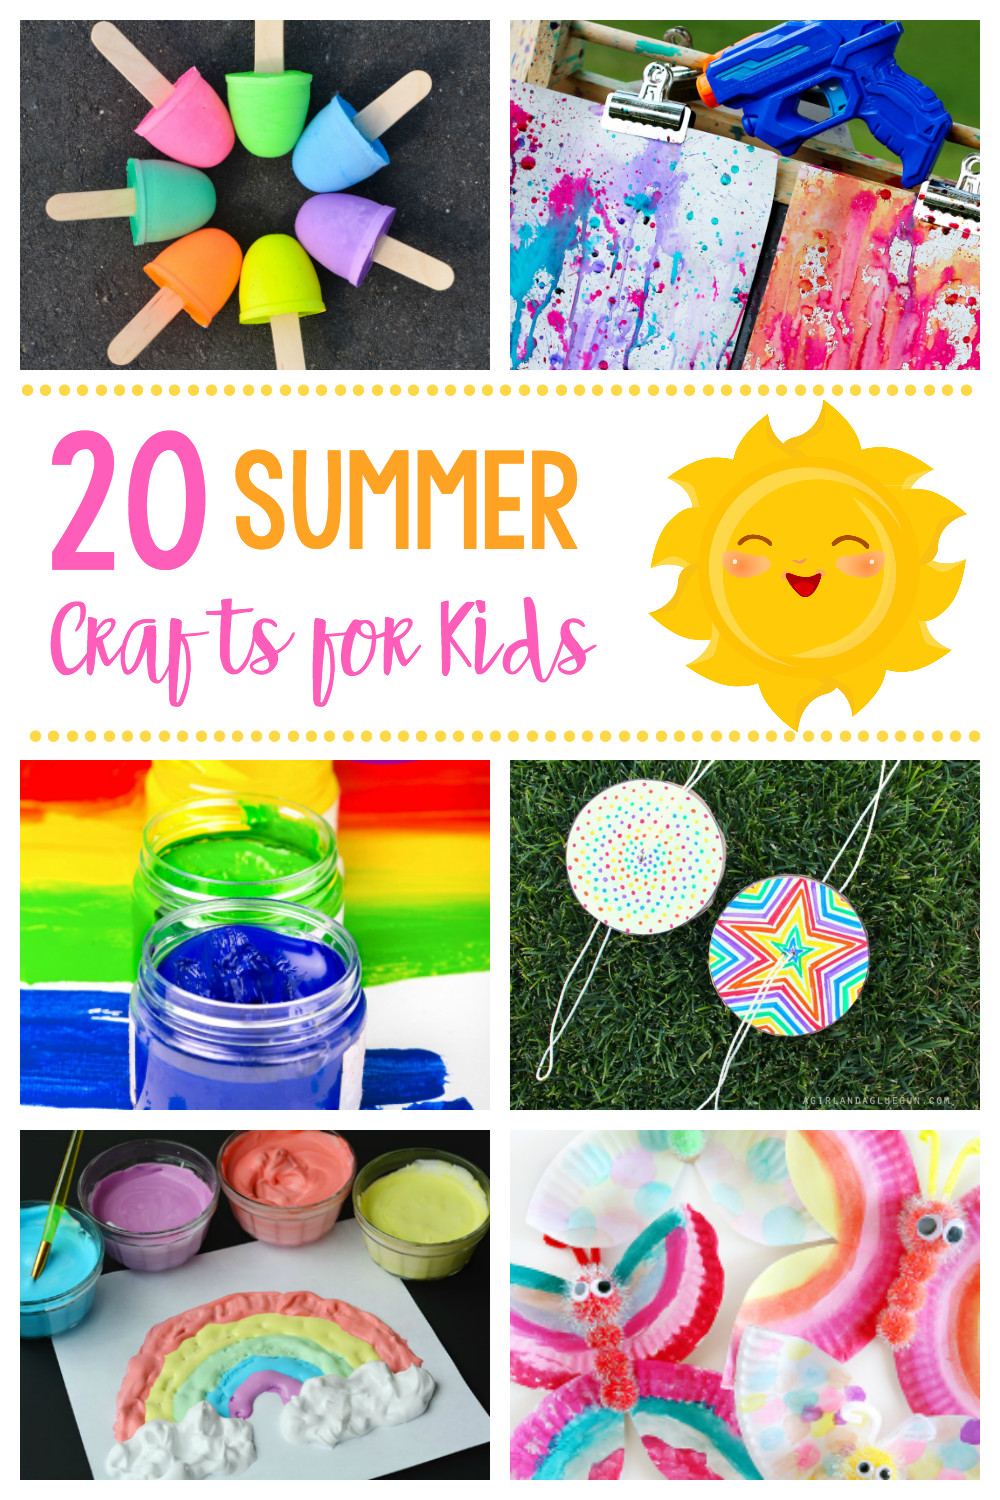 Best ideas about Easy Craft Ideas For Kids . Save or Pin 20 Simple & Fun Summer Crafts for Kids Now.